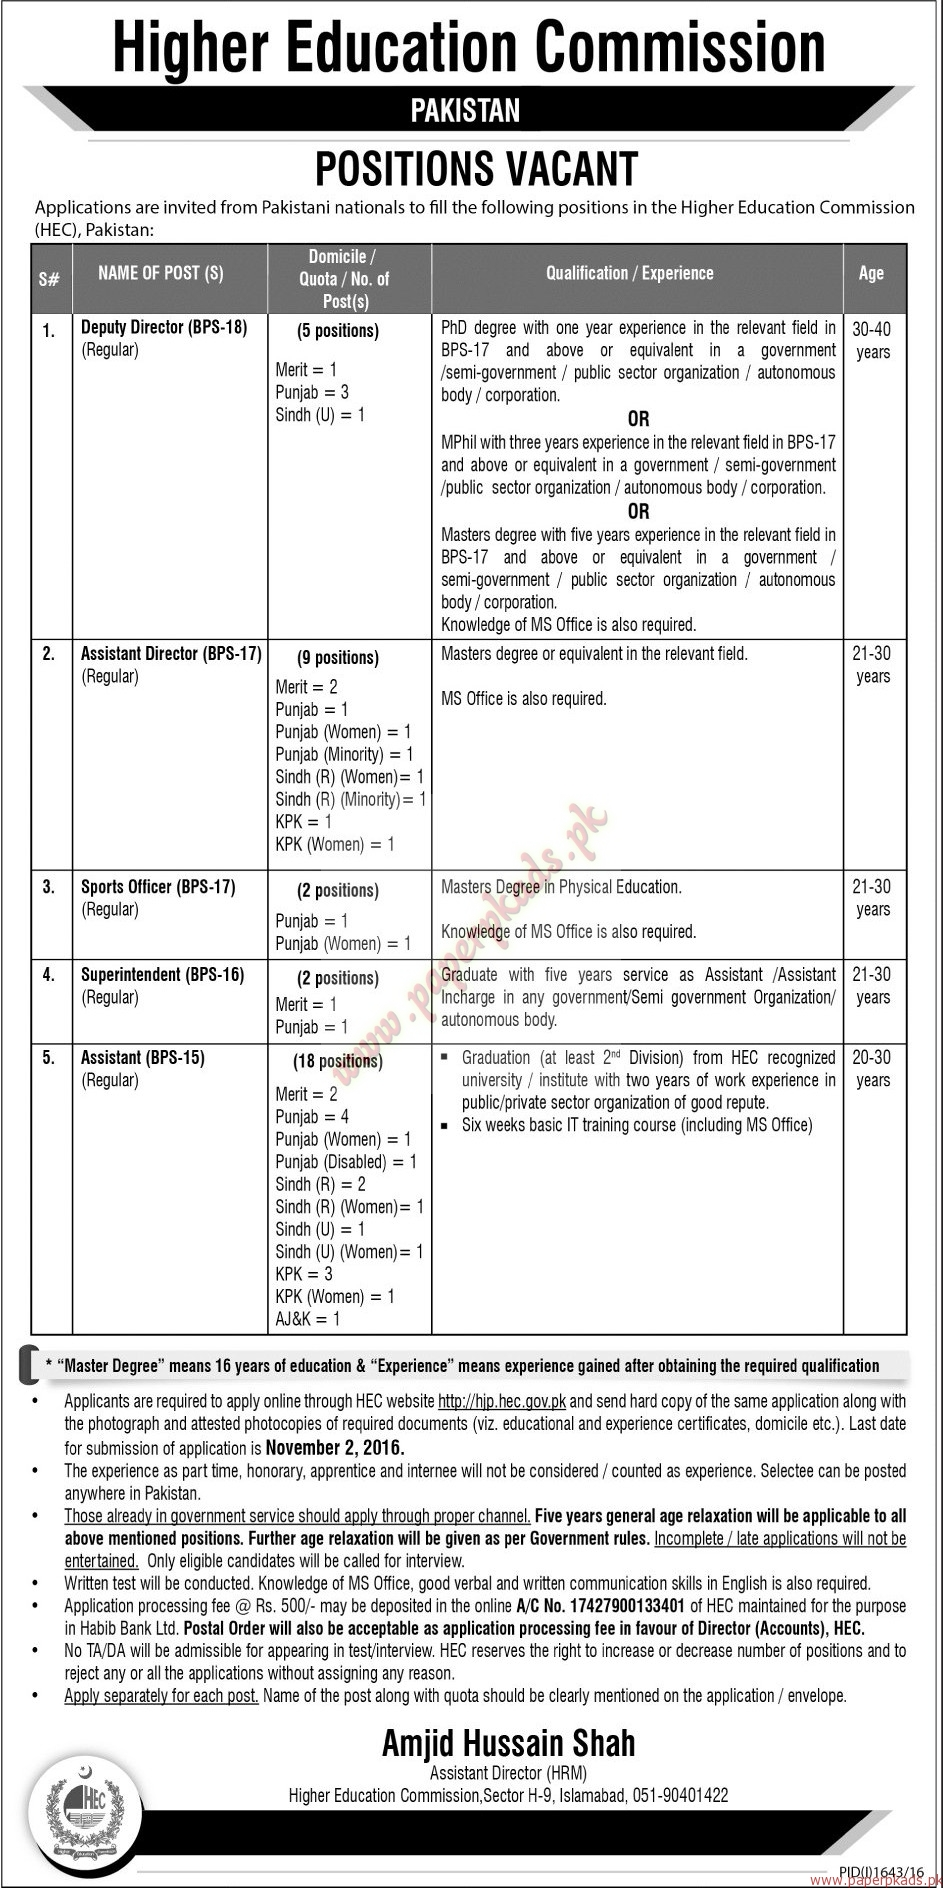 Higher Education Commission Jobs - Jang Jobs ads 02 October 2016 ...